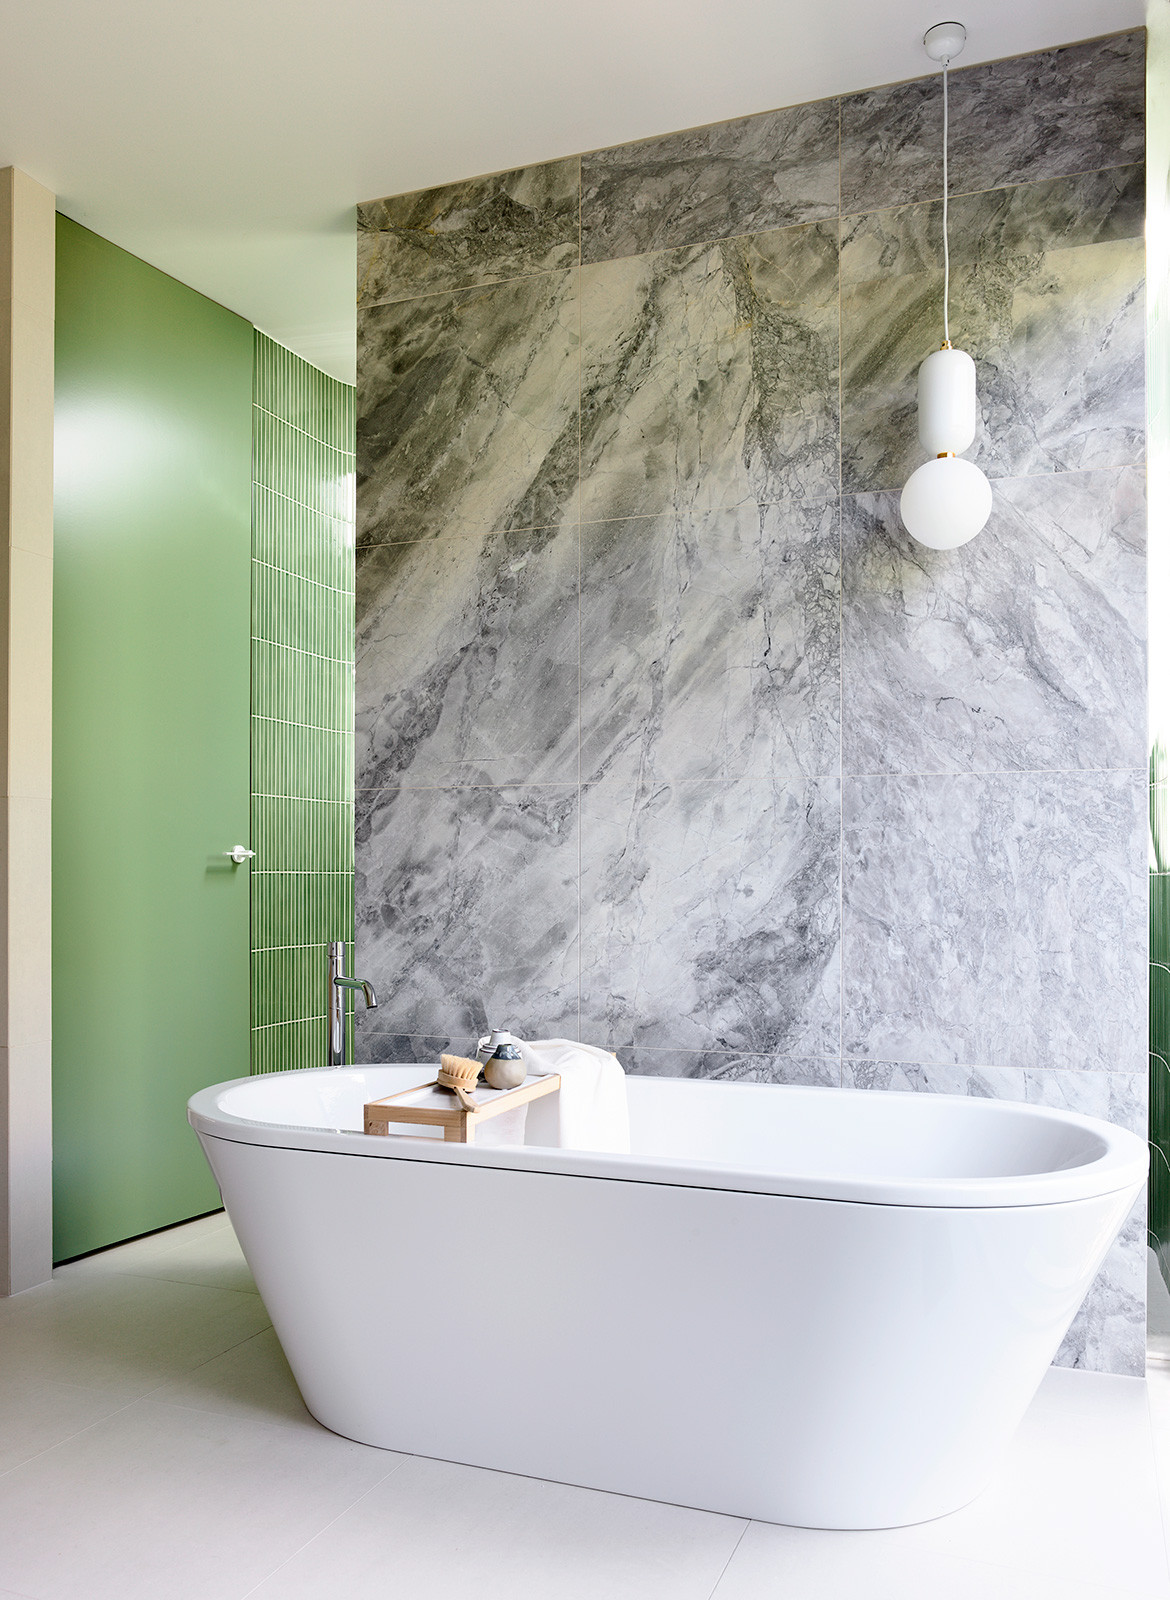 Doherty Design Studio Ivanhoe Residences CC Derek Swalwell bath tub